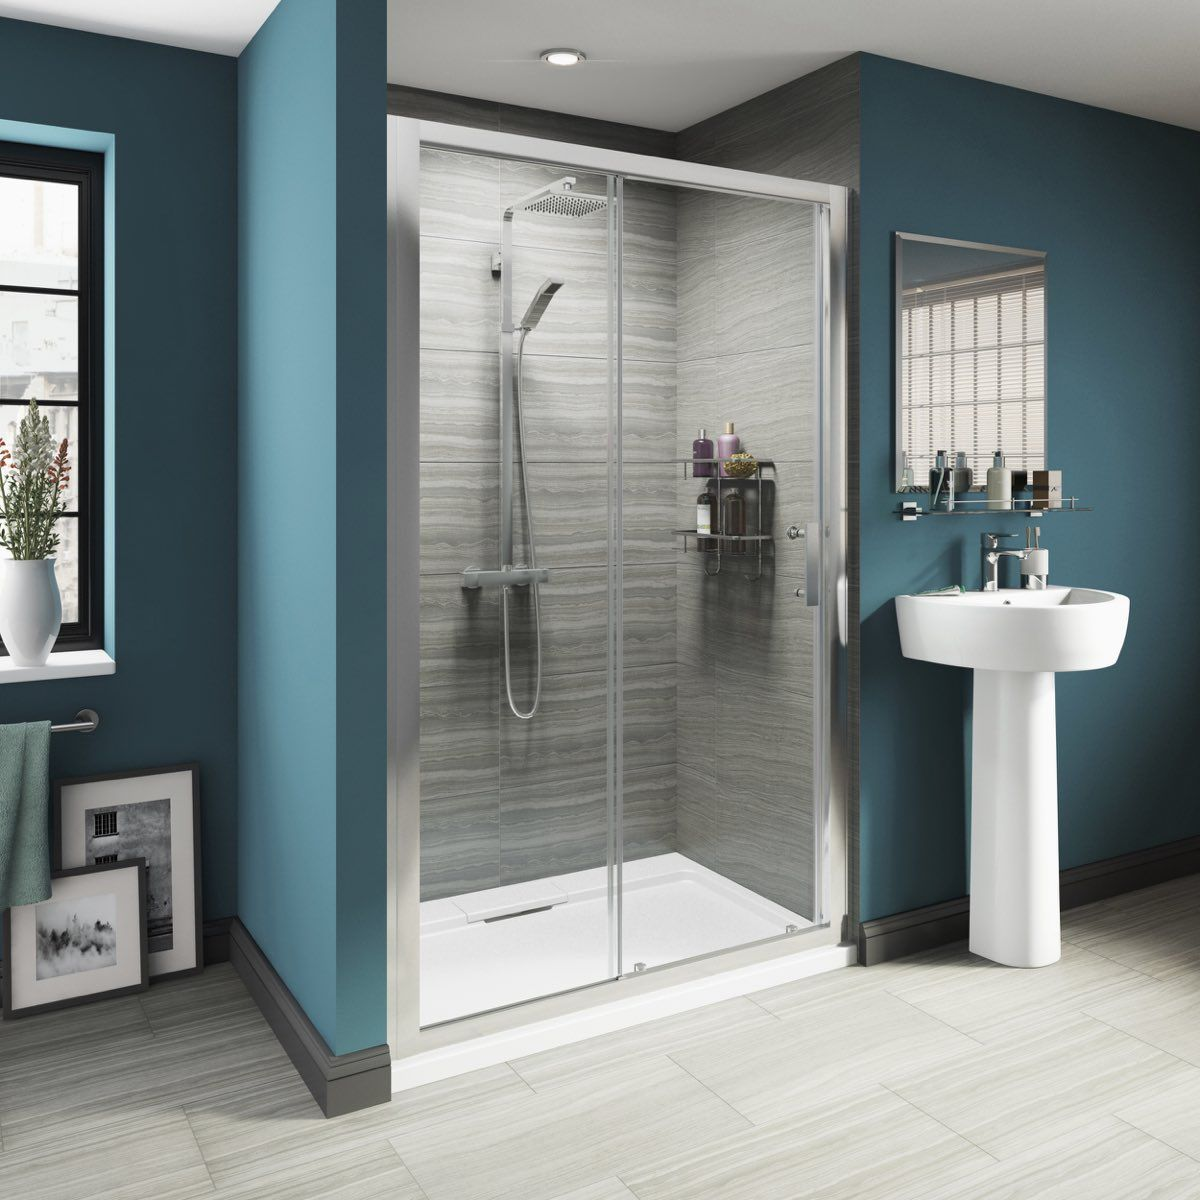 The Victoria Plumb luxury Sliding Door really highlights the available showering space with its clear & The Victoria Plumb luxury Sliding Door really highlights the ...